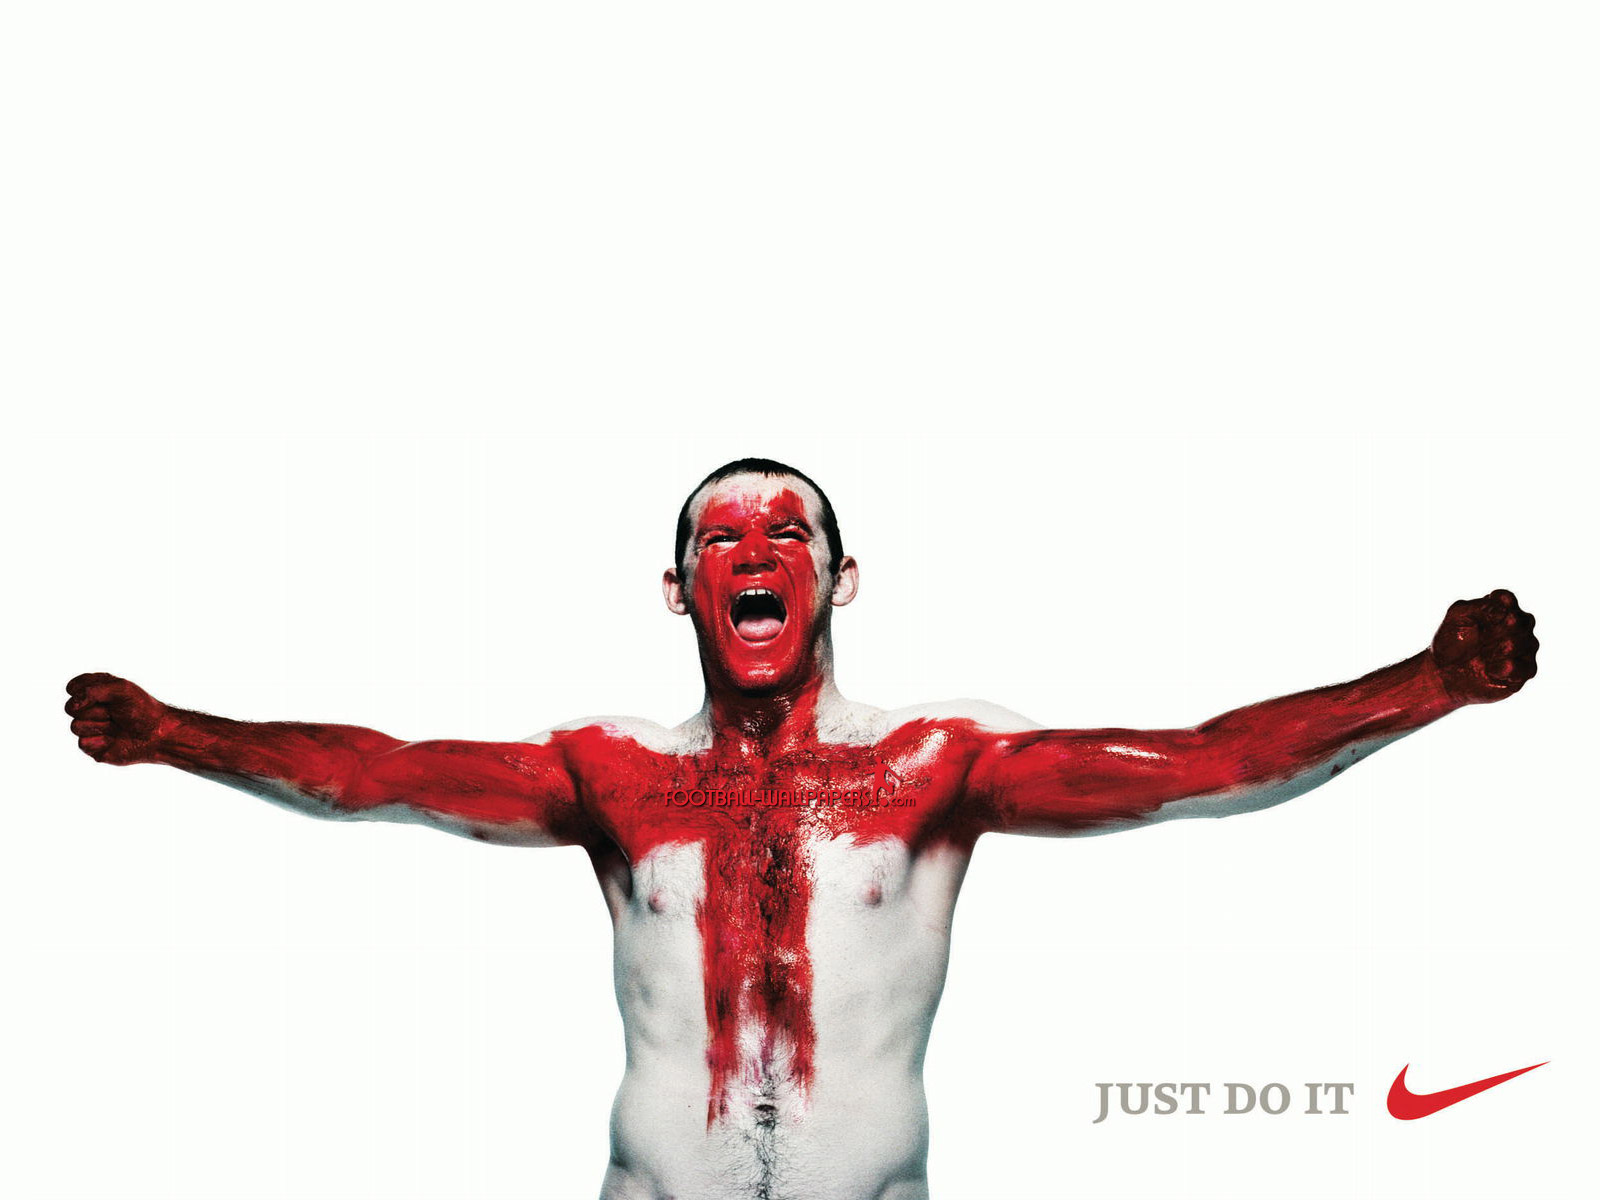 Download High quality Wayne Rooney Just Do It Football wallpaper / 1600x1200